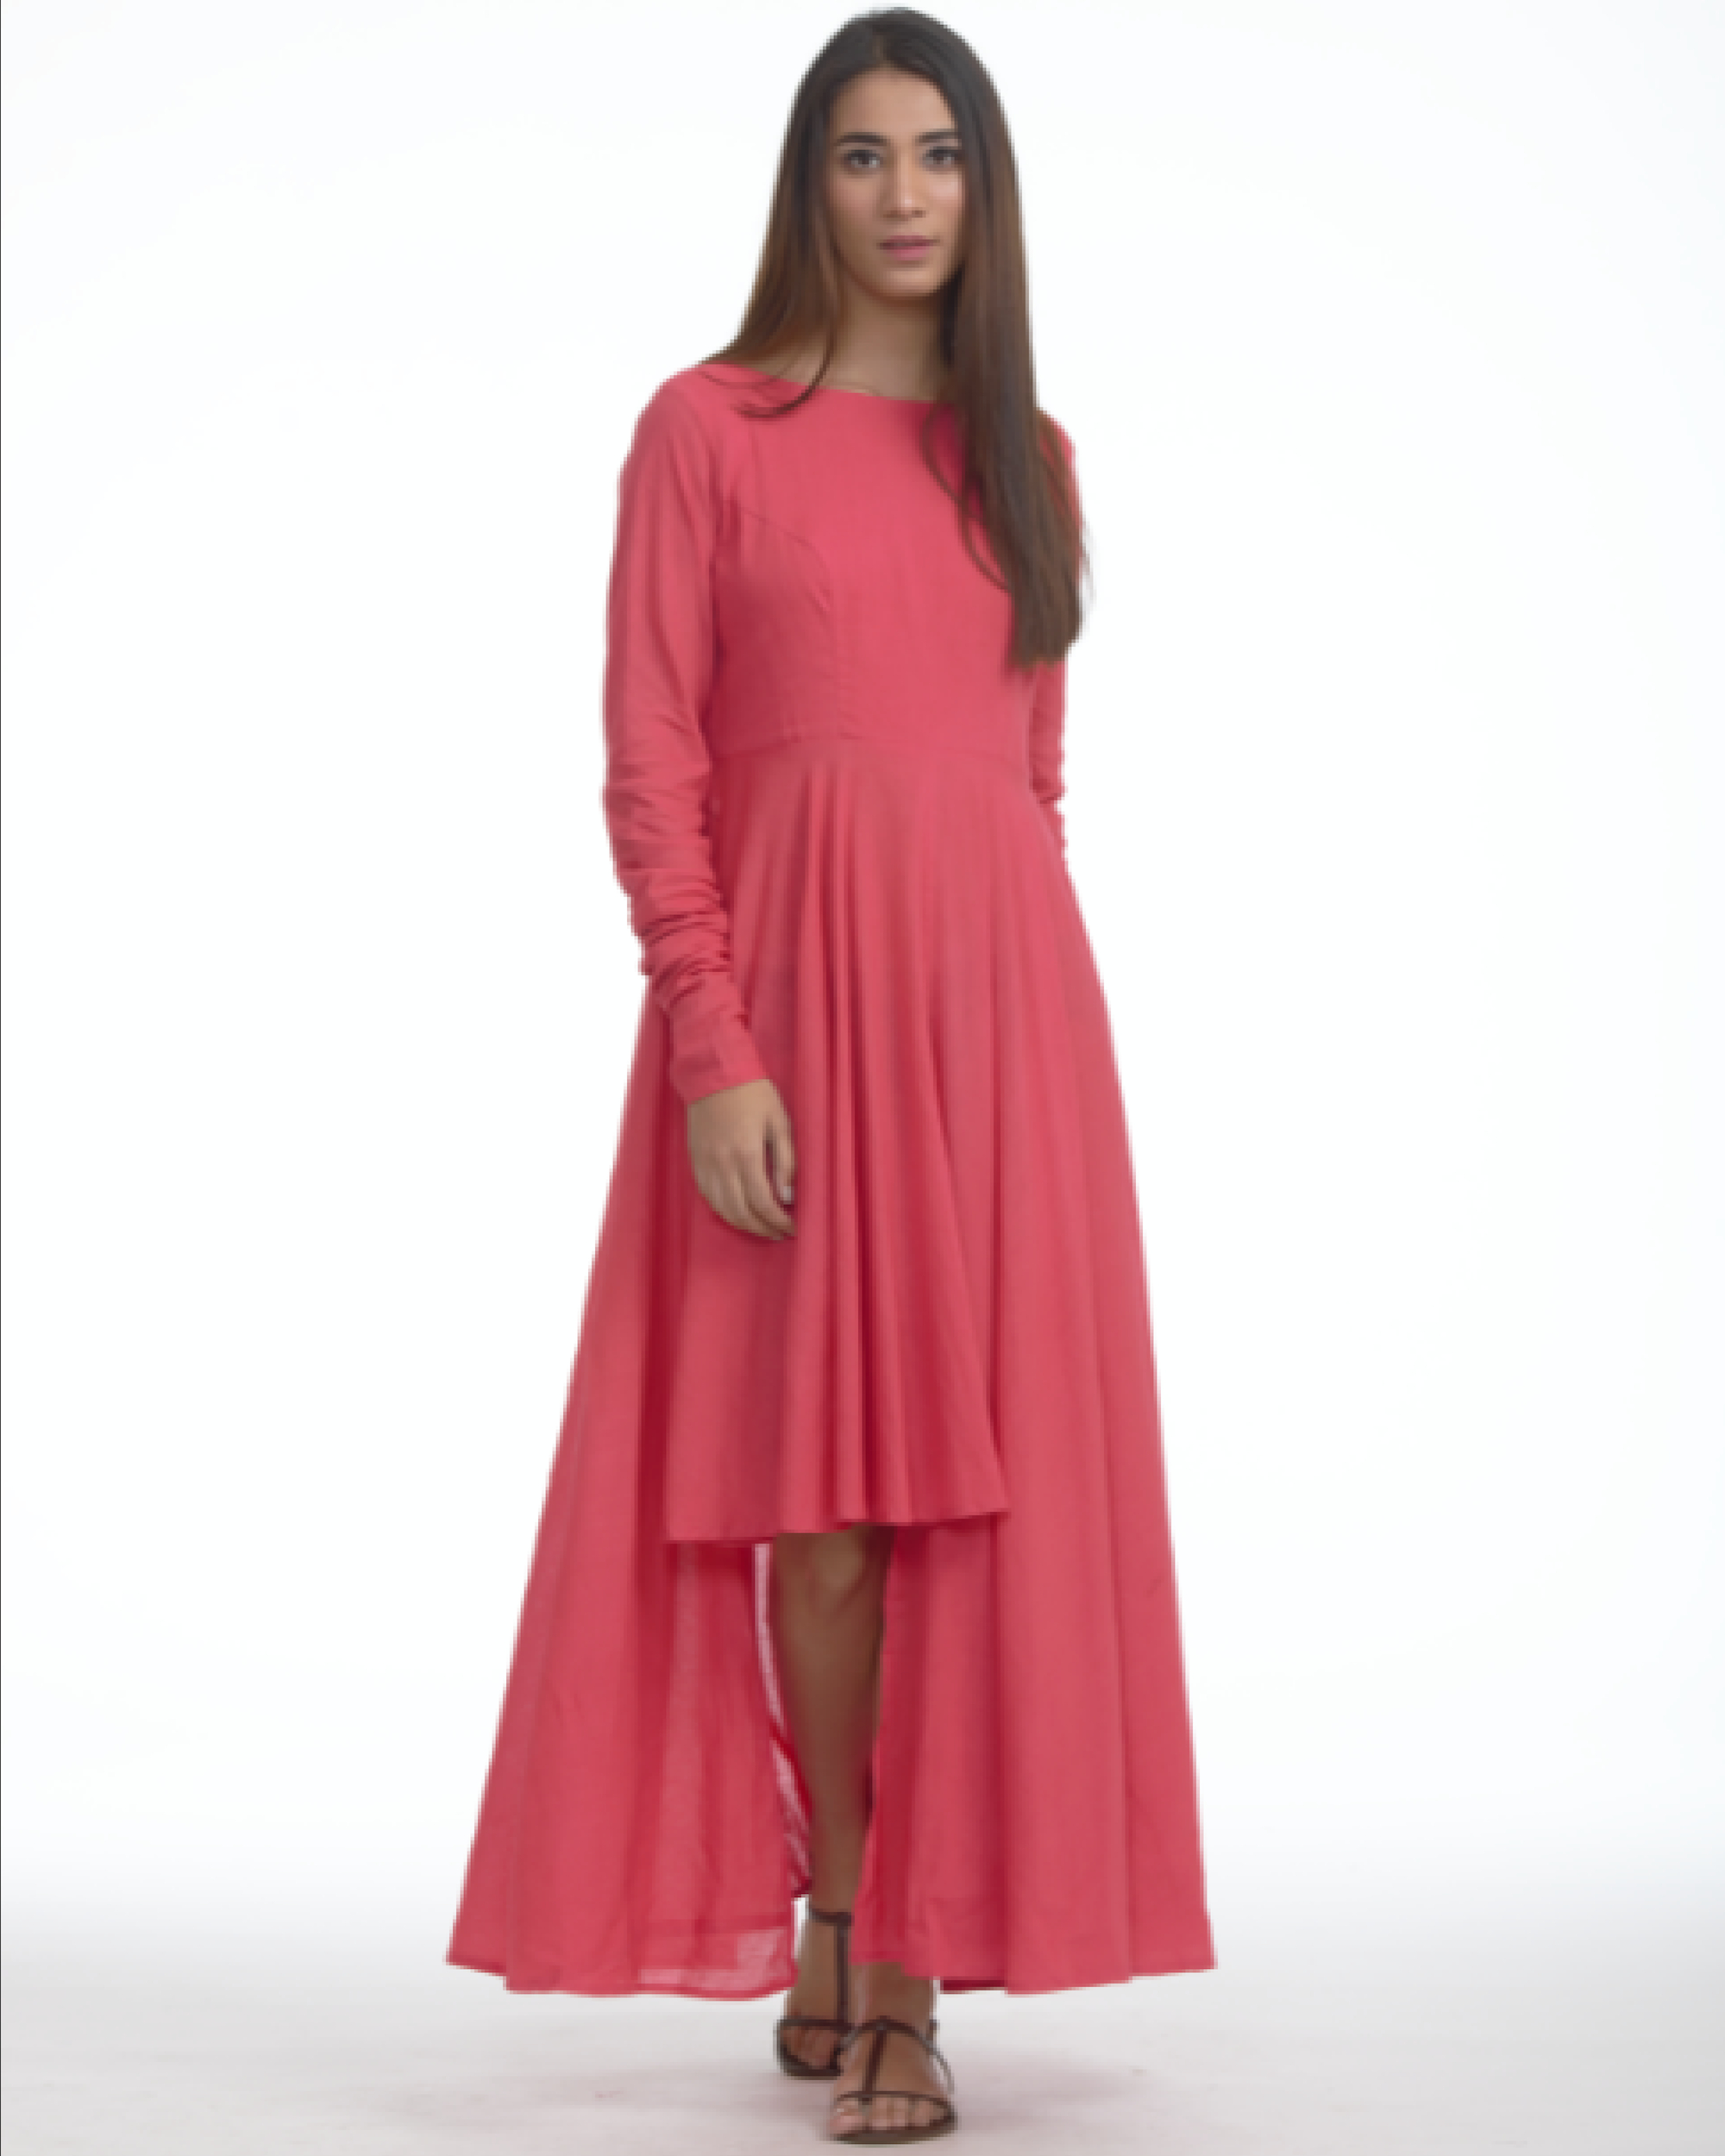 Coral pink asymmetric dress